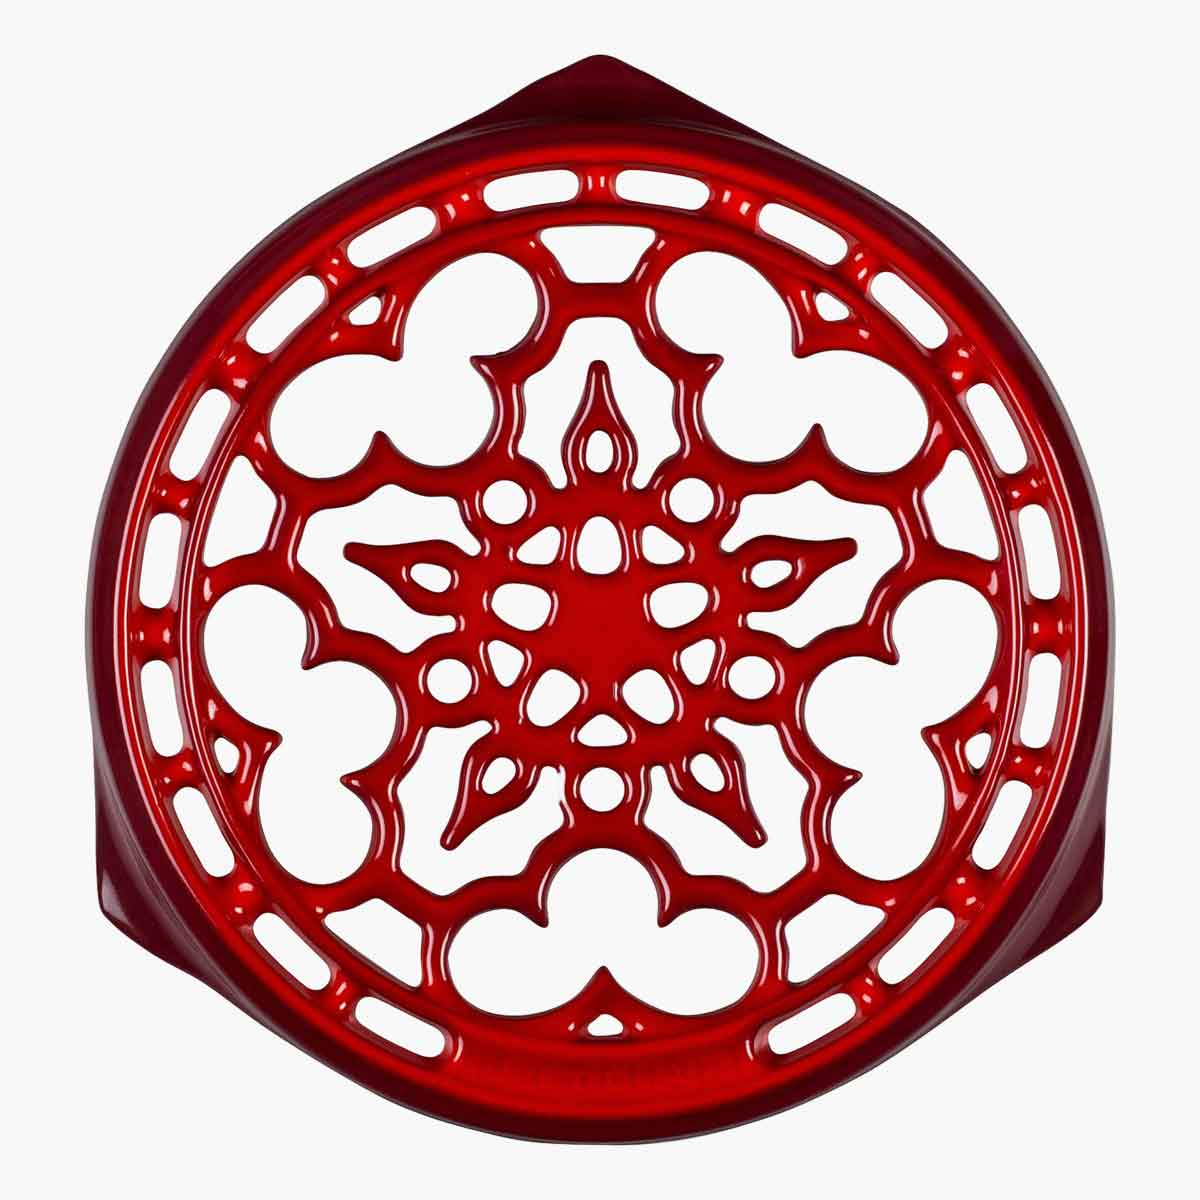 A red Deluxe Round Trivet.